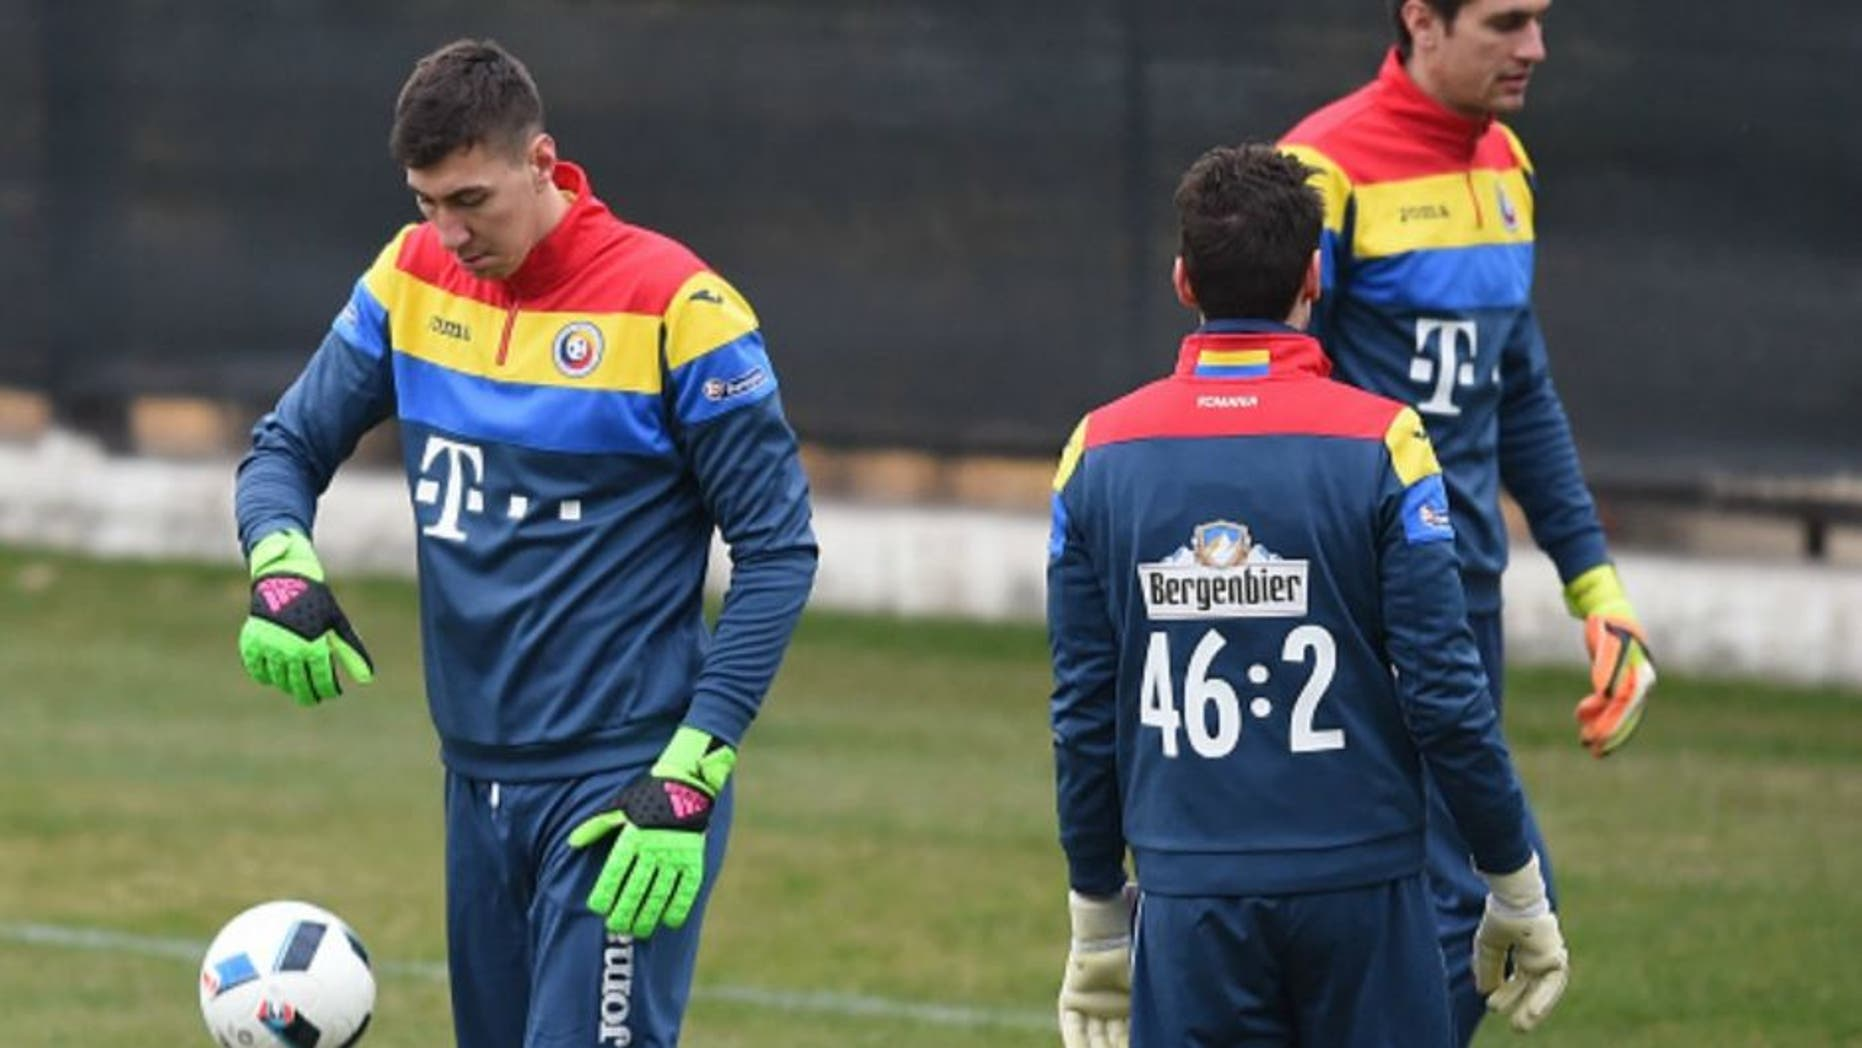 Romania's goalkeeper Costel Pantilimon (L) attends a training session on March 26, 2016, on the eve of the friendly football match Romania against Spain in Cluj Napoca city. / AFP / DANIEL MIHAILESCU (Photo credit should read DANIEL MIHAILESCU/AFP/Getty Images)